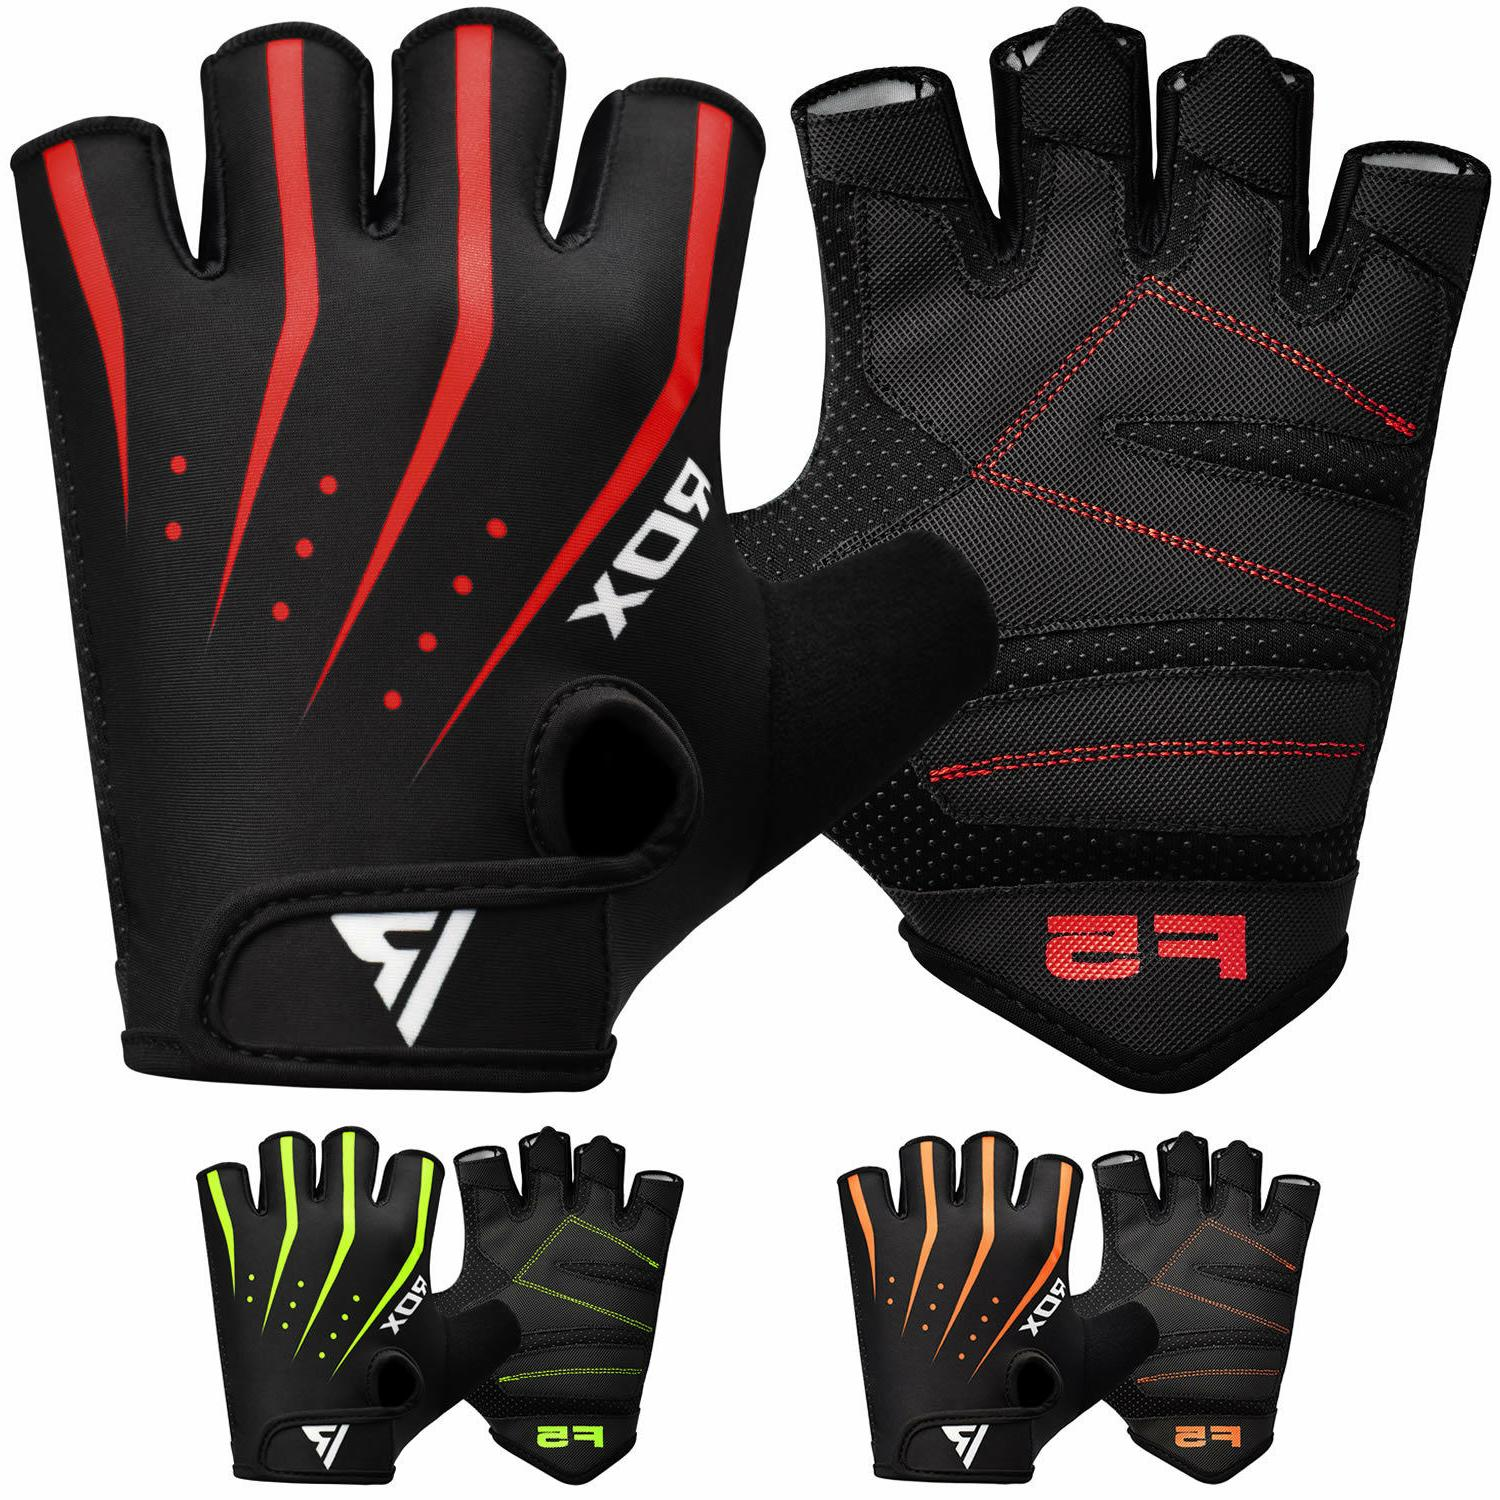 gym weight lifting gloves workout fitness training